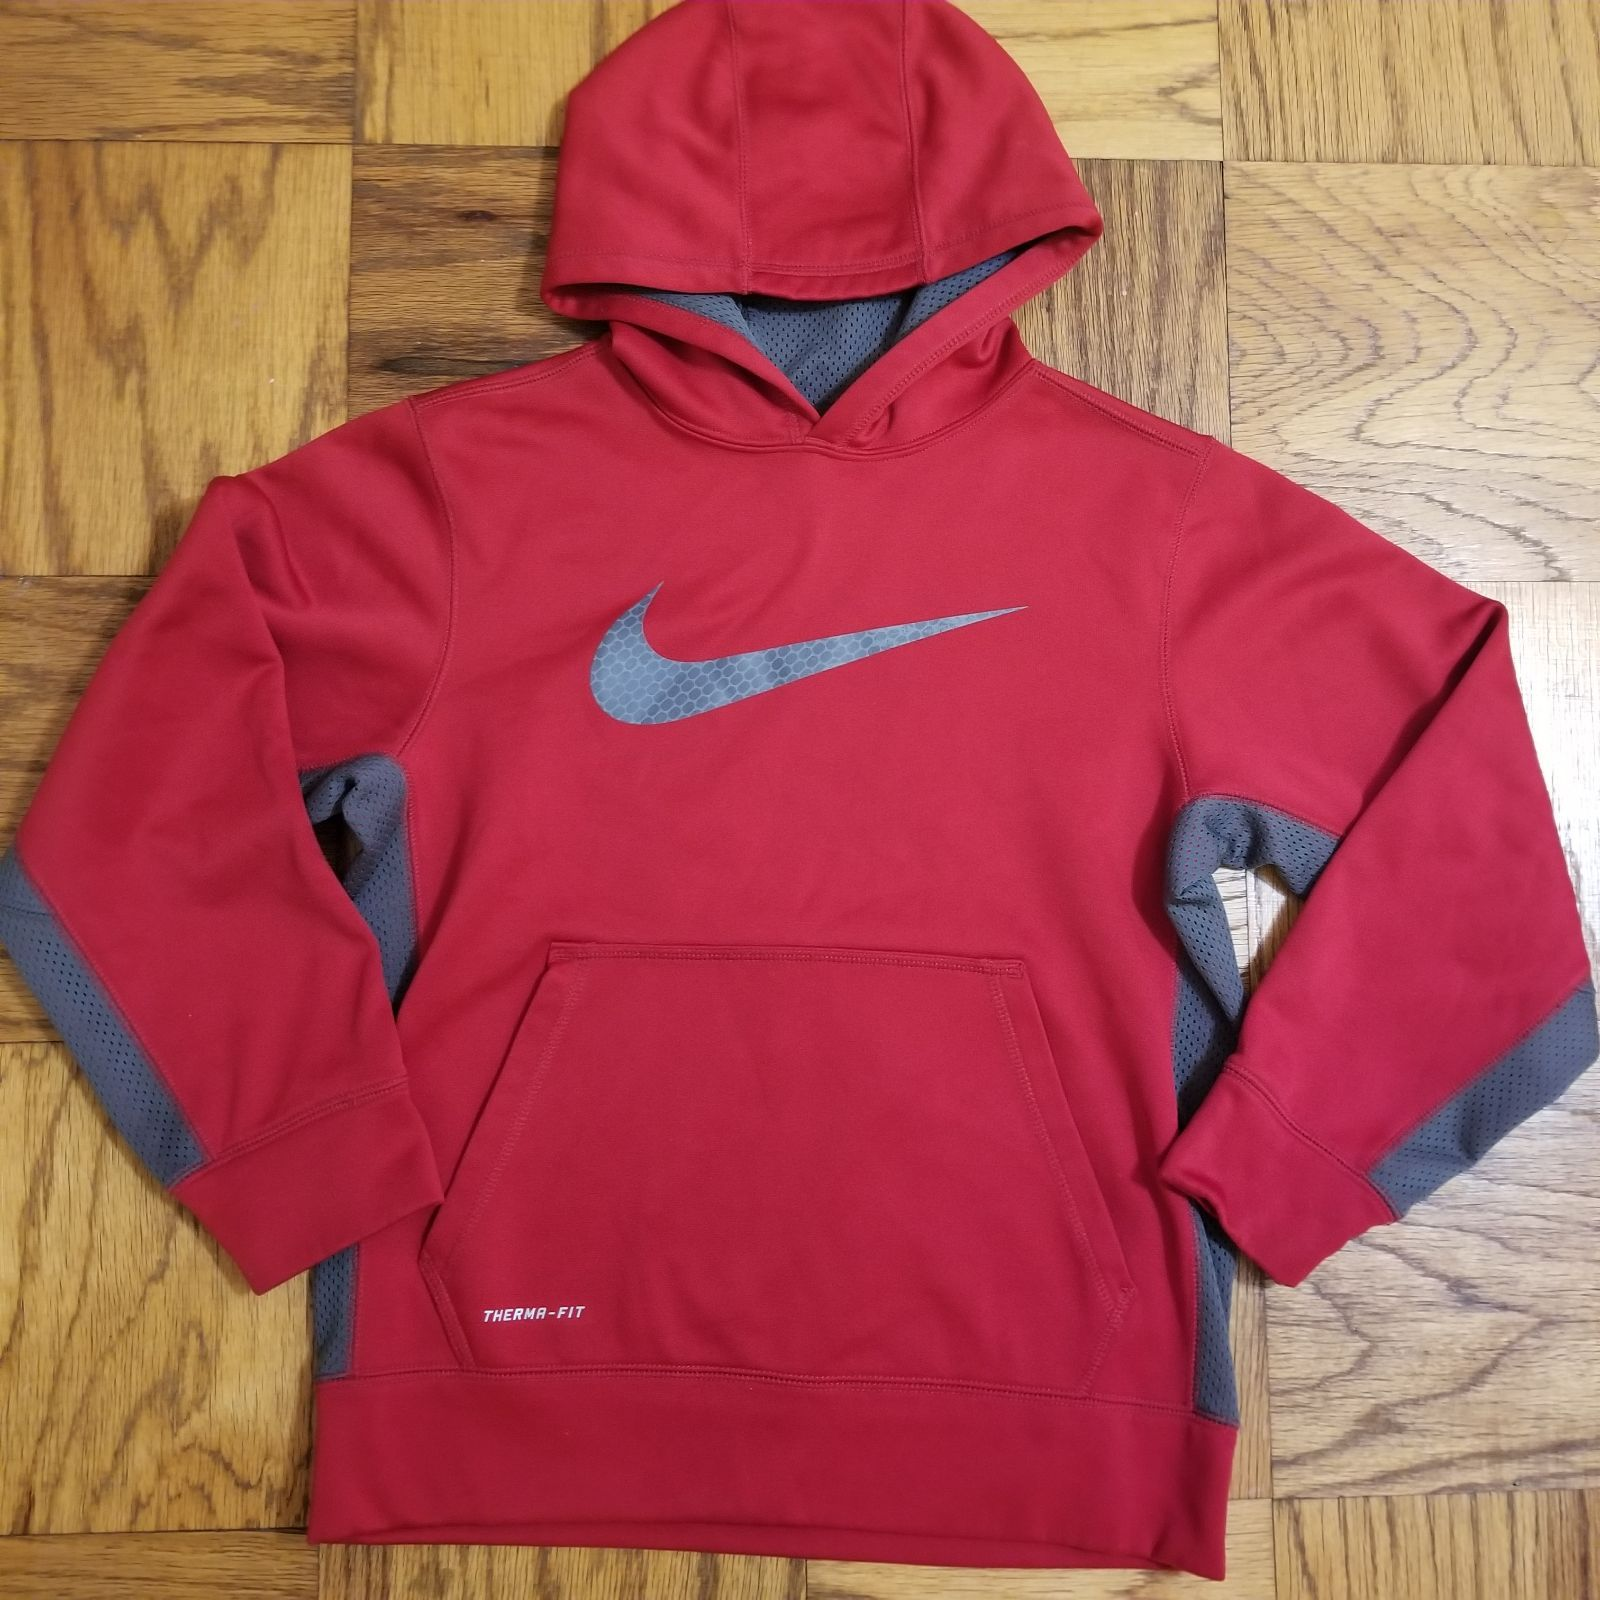 Boy S Therma Fit Hooded Sweatshirt From Nike Size Large Red With Grey Swoosh Logo Across The Chest A Nike Therma Fit Hoodie Workout Hoodie Hooded Sweatshirts [ 1600 x 1600 Pixel ]